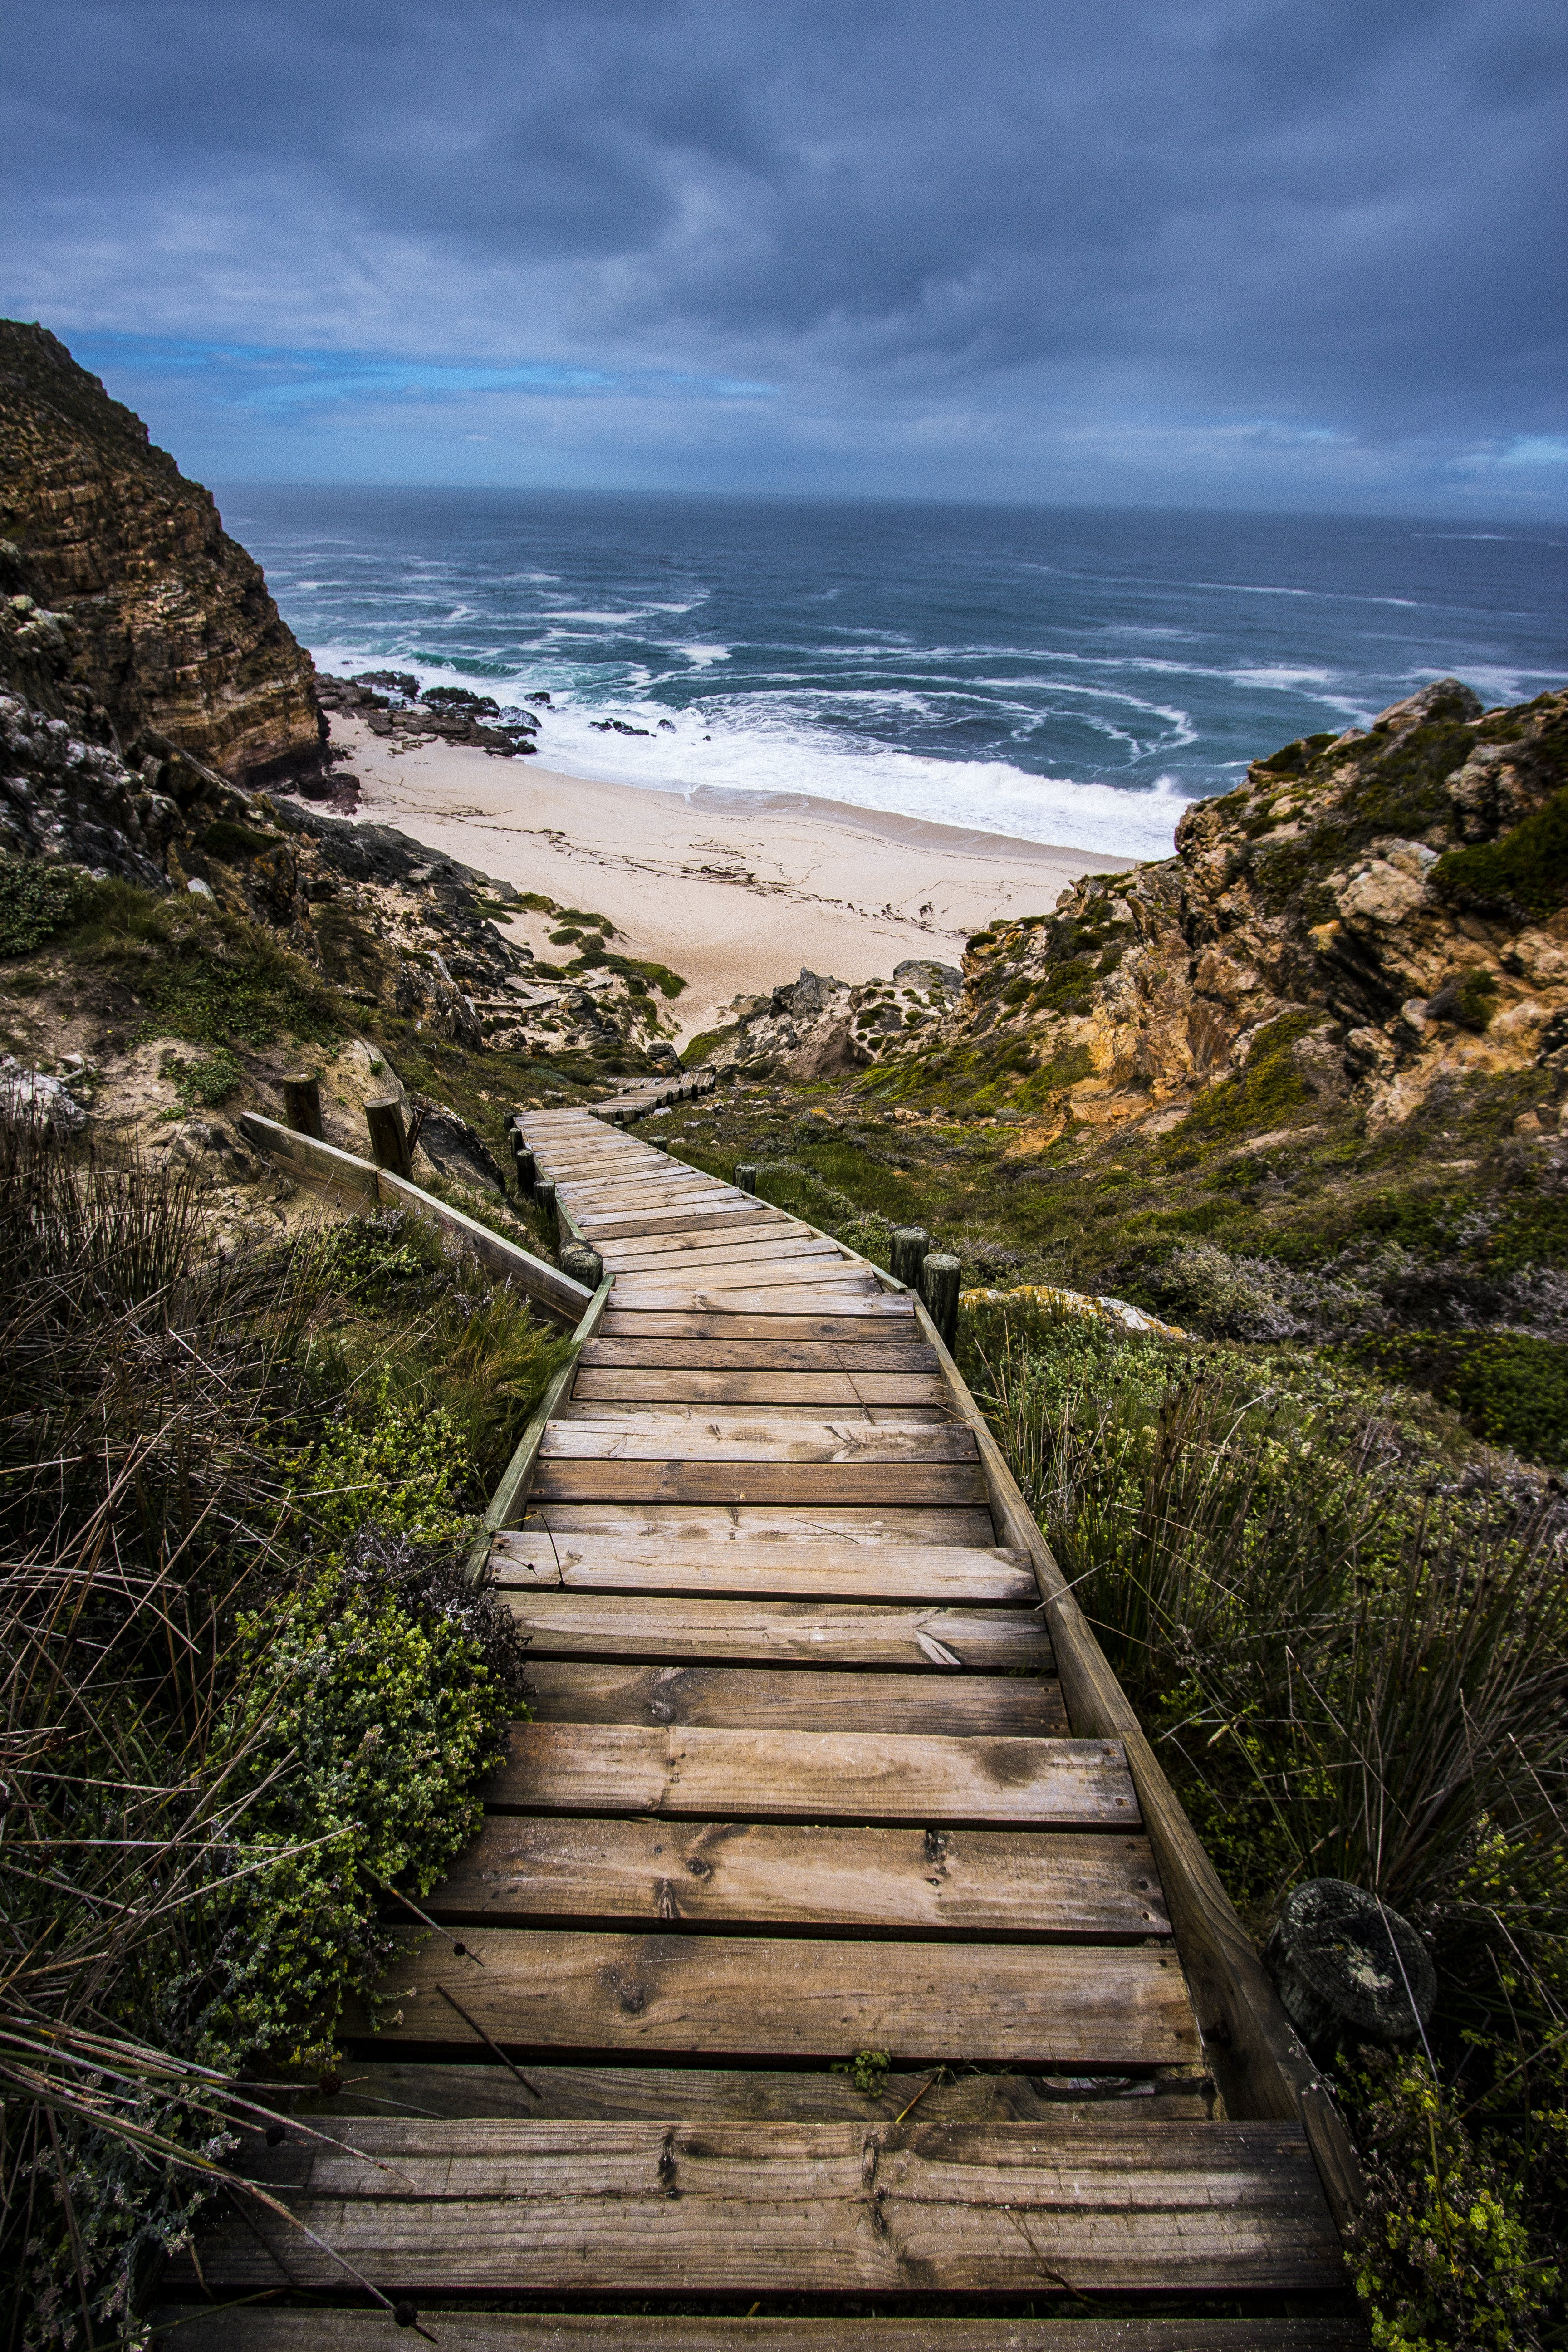 Wooden Stairs to Beach